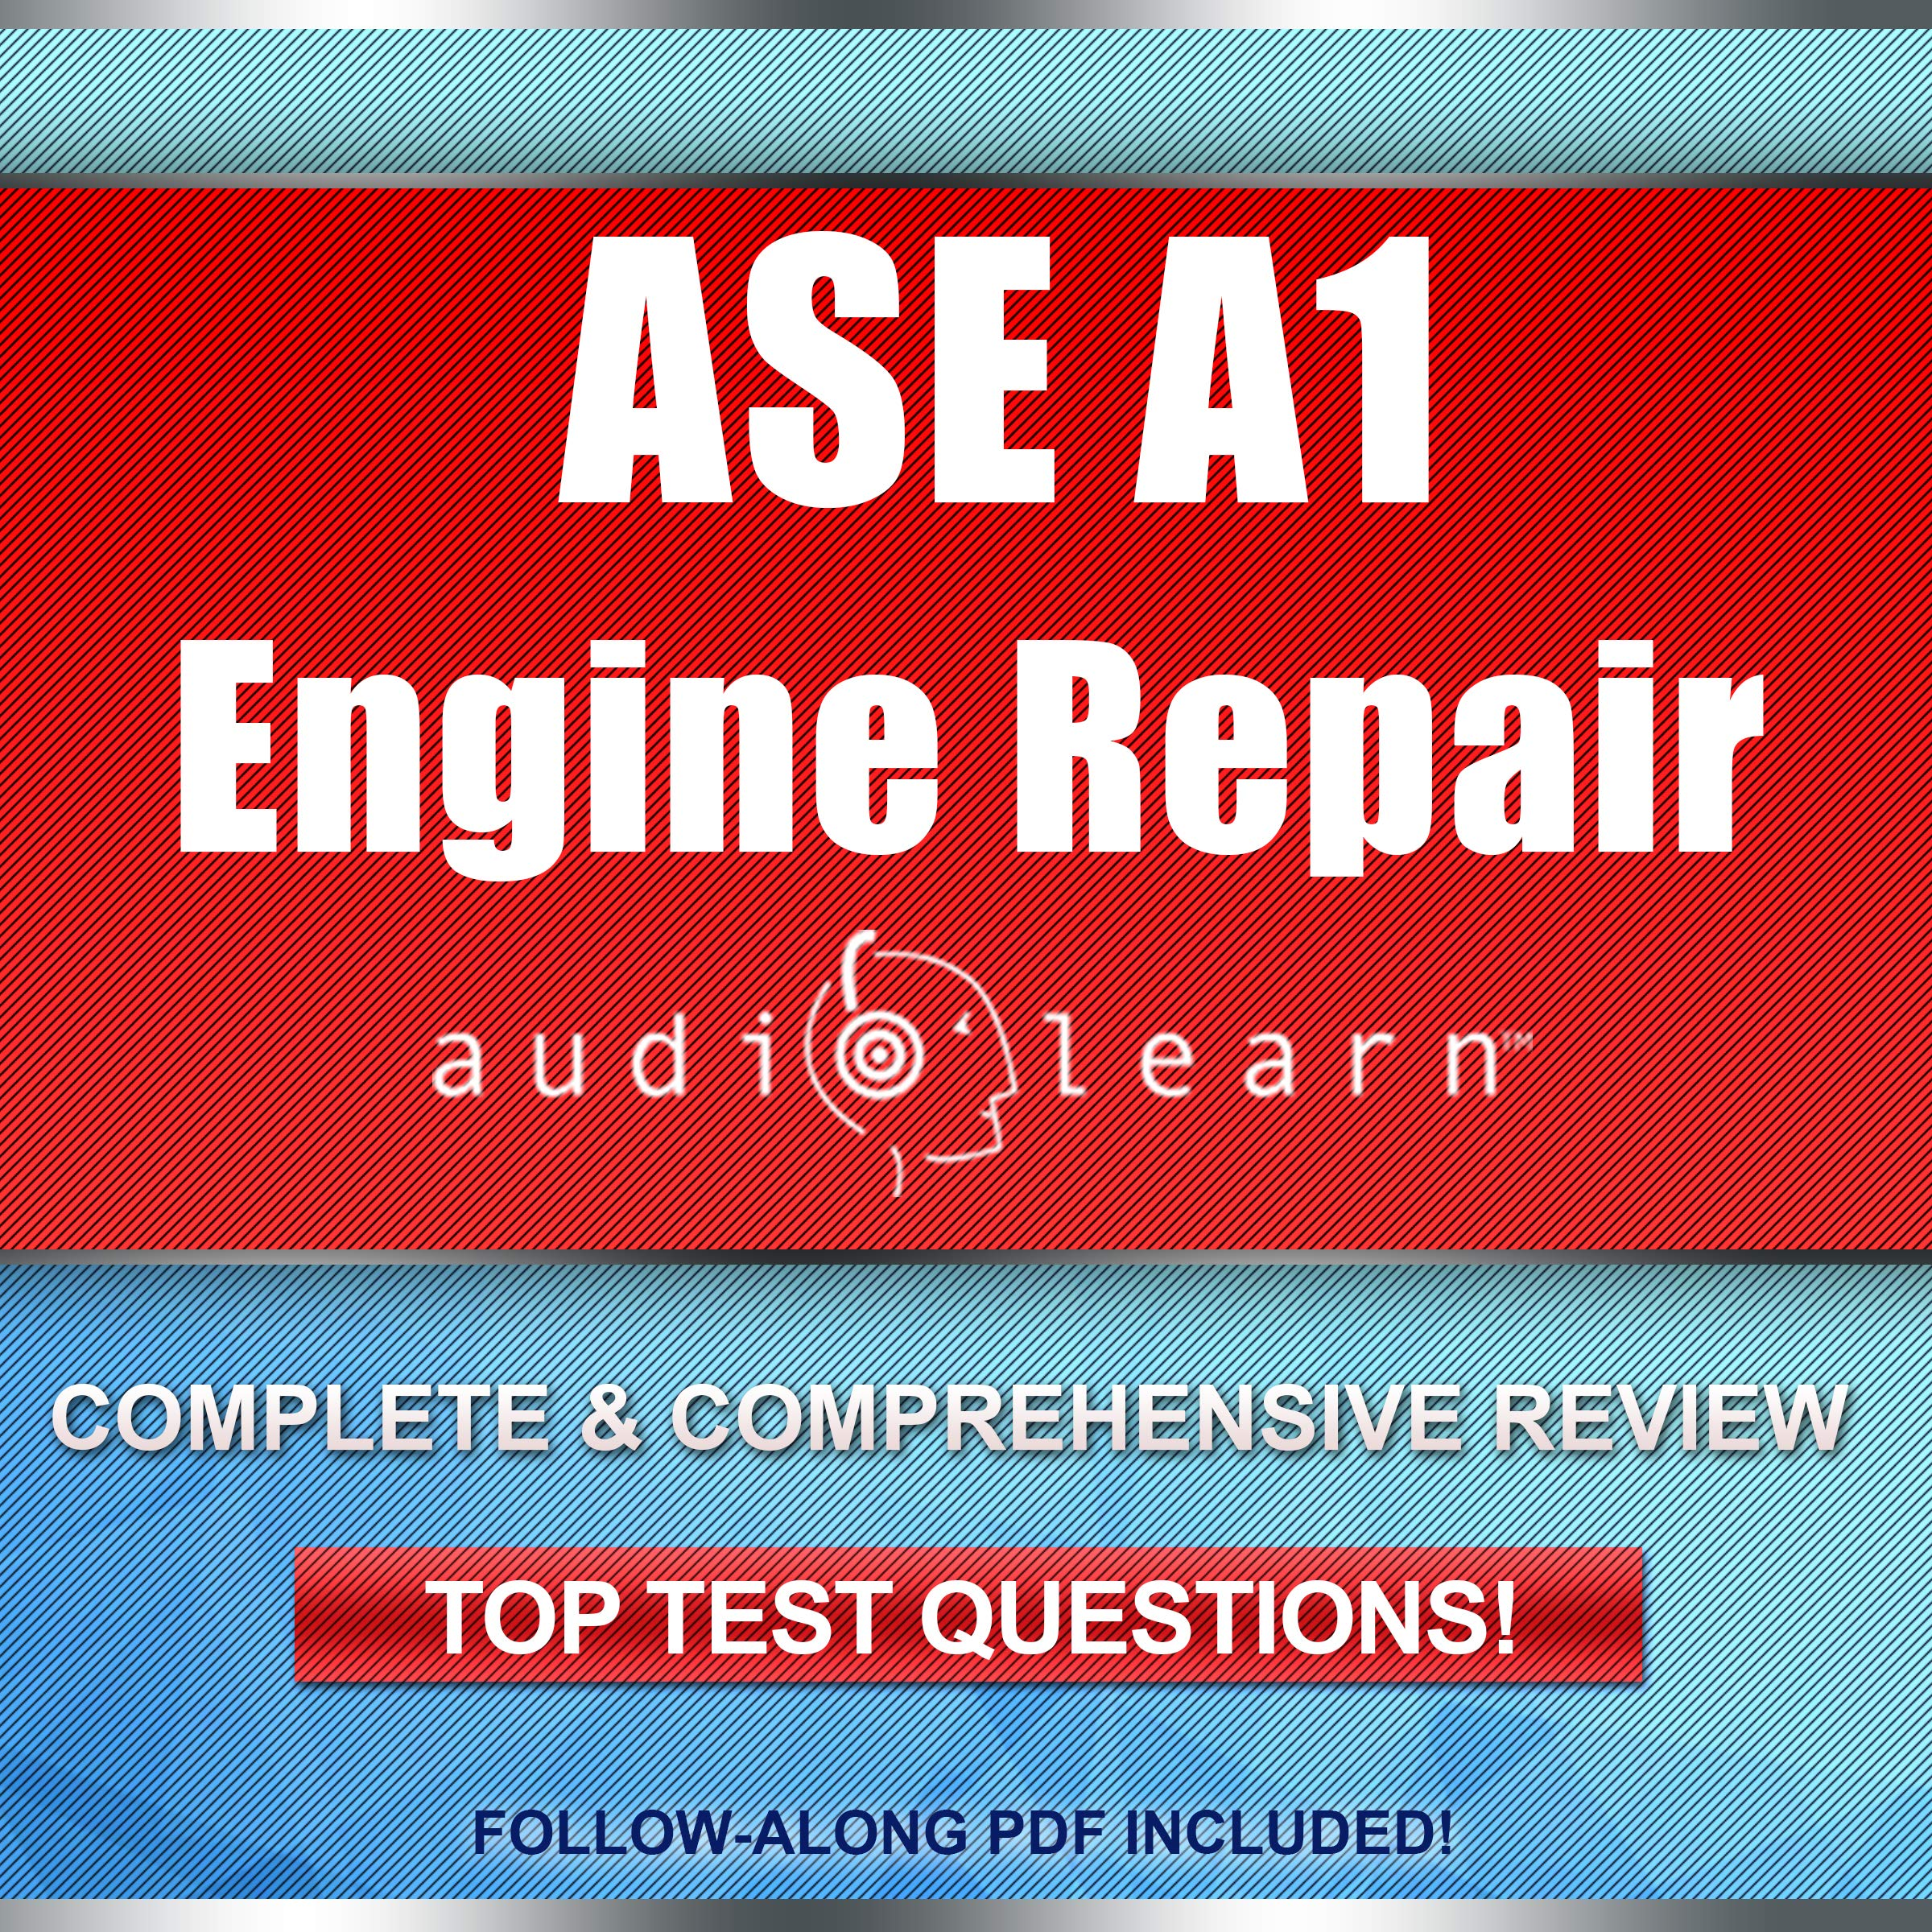 Ase Engine Repair Certification Test A1 Audiolearn Complete